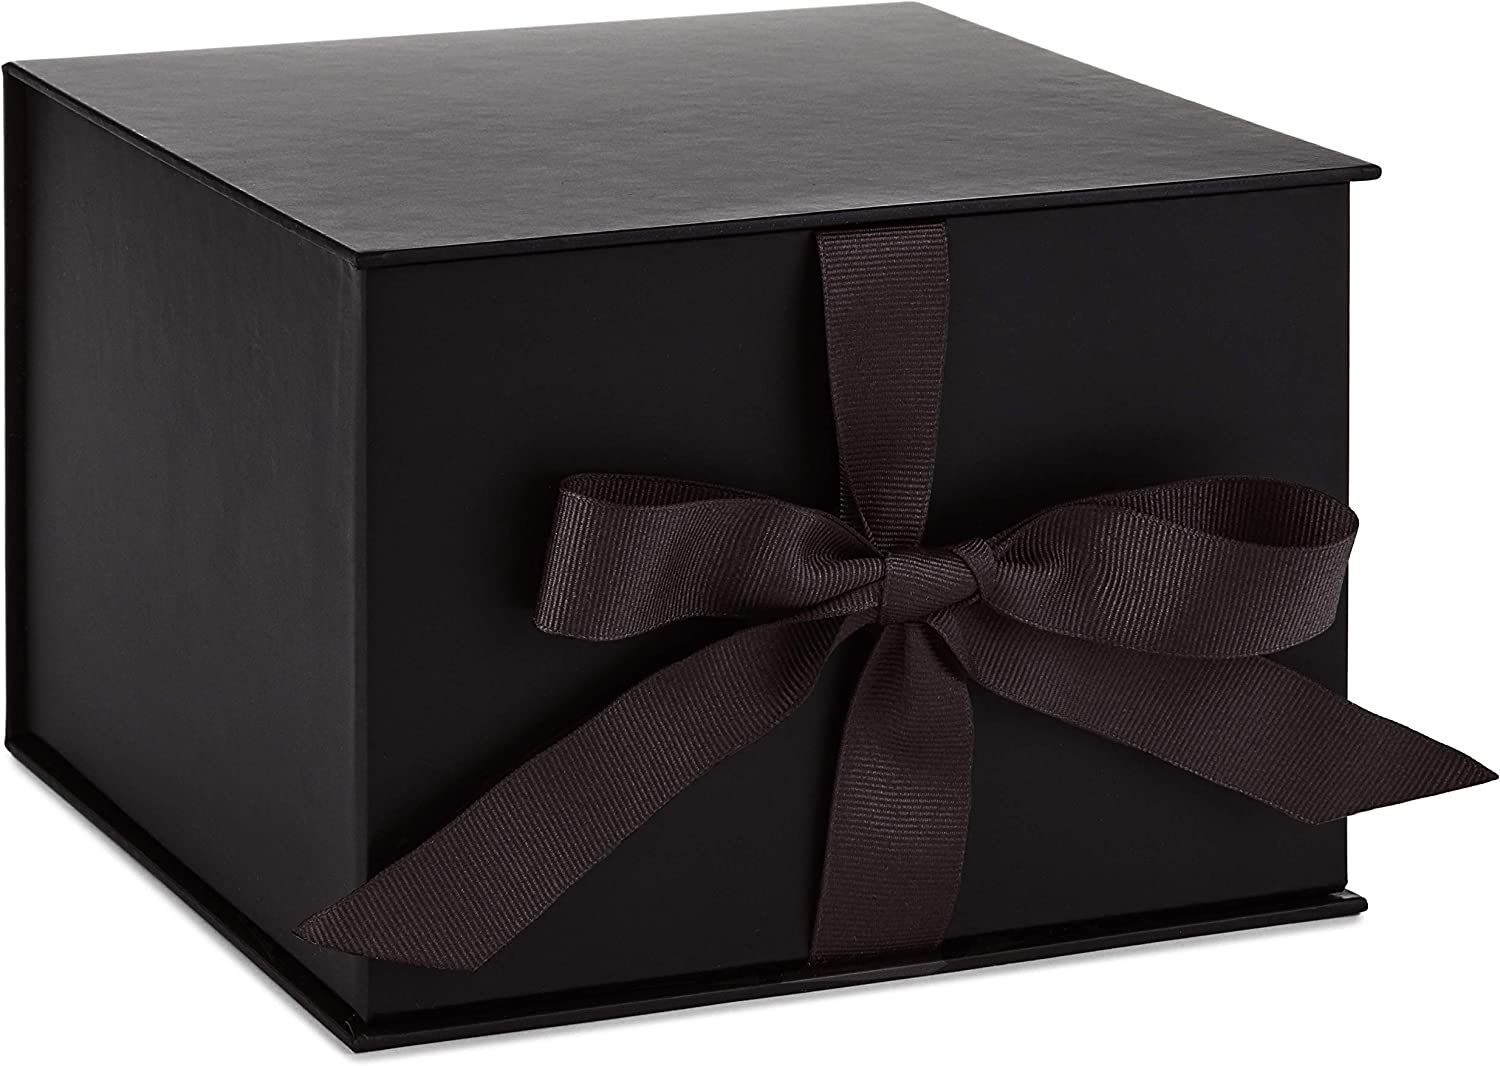 "Hallmark 7"" Large Black Gift Box with Lid and Shredded Paper Fill for Fathers Day, Graduations, Weddings, Birthdays, Grooms Gifts, Engagements, Christmas and More"